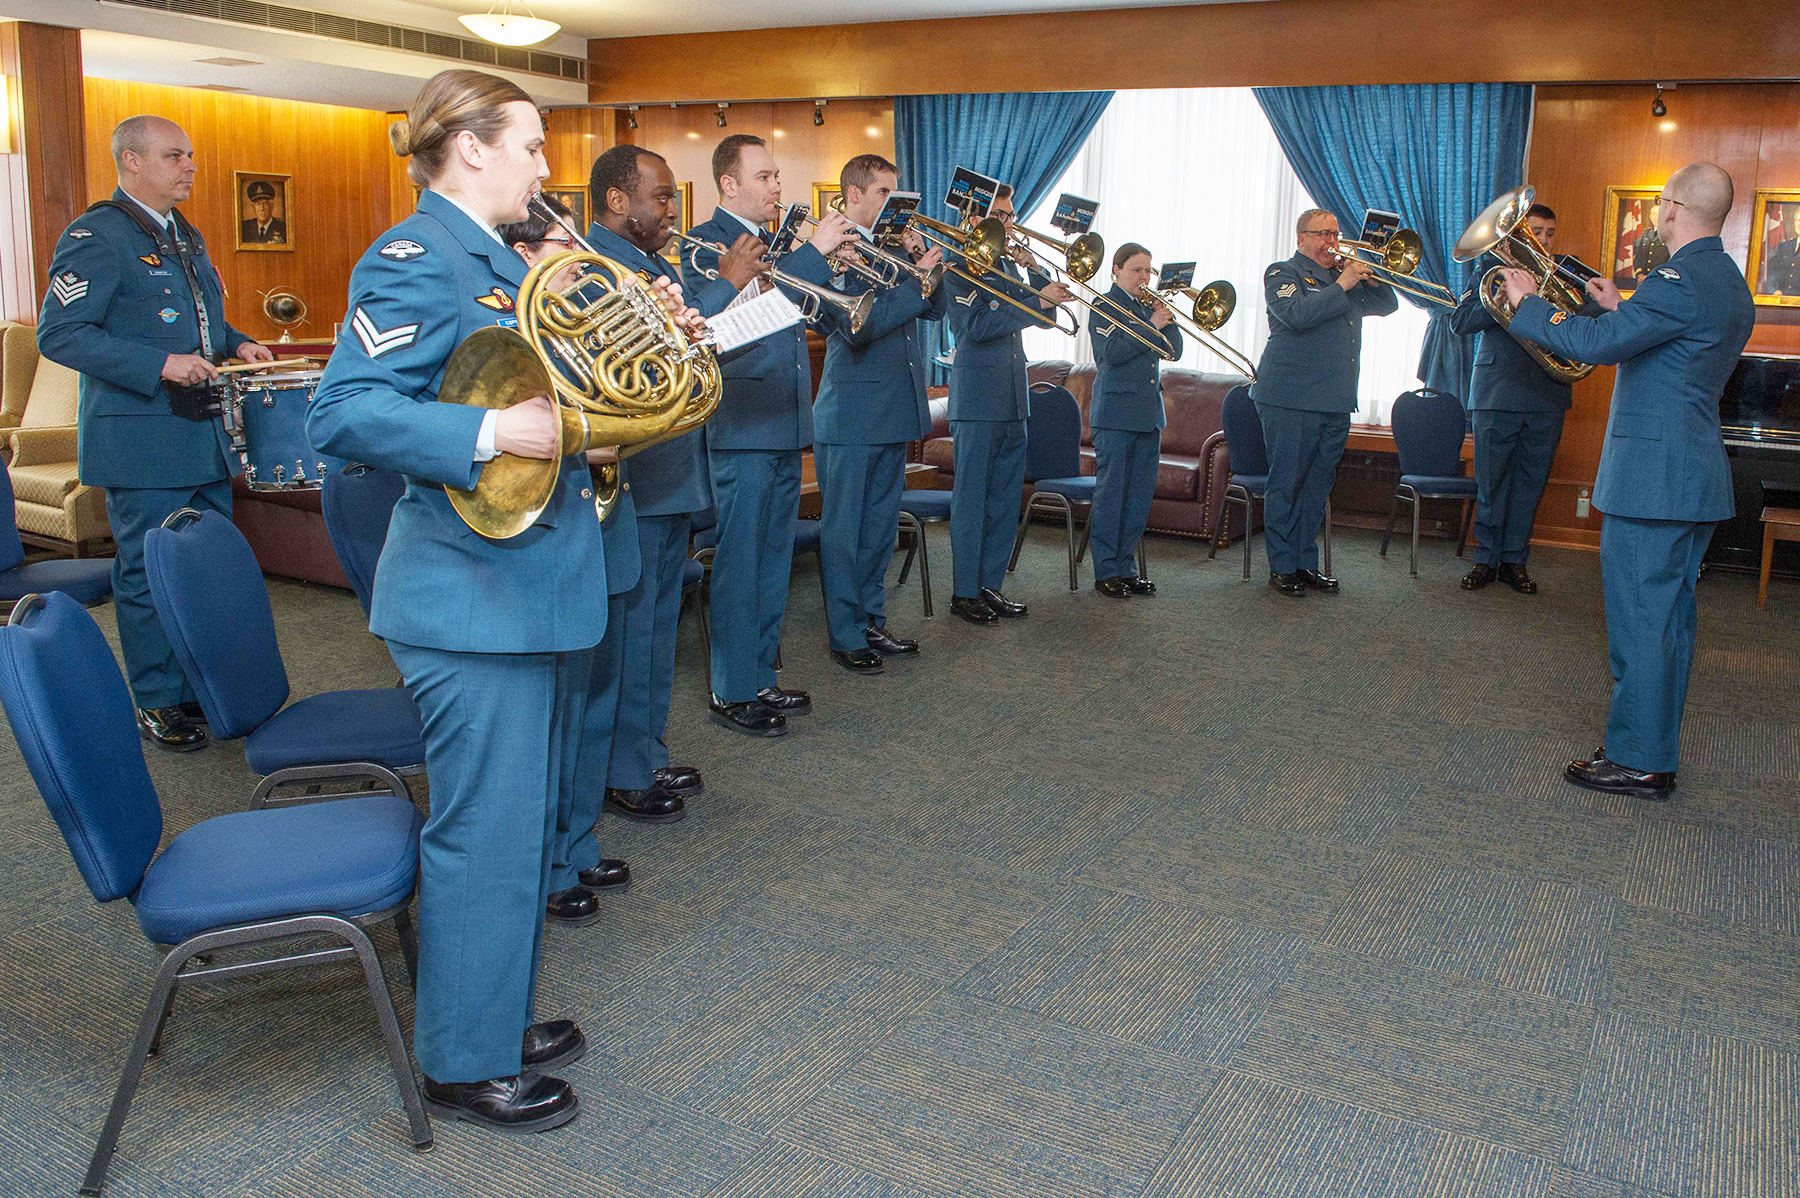 The RCAF Band brass section performs at 17 Wing Winnipeg, Manitoba, on March 21, 2018, during the Honorary Colonel change of appointment ceremony. PHOTO: Corporal Darryl Hepner, WG2018-0120-004